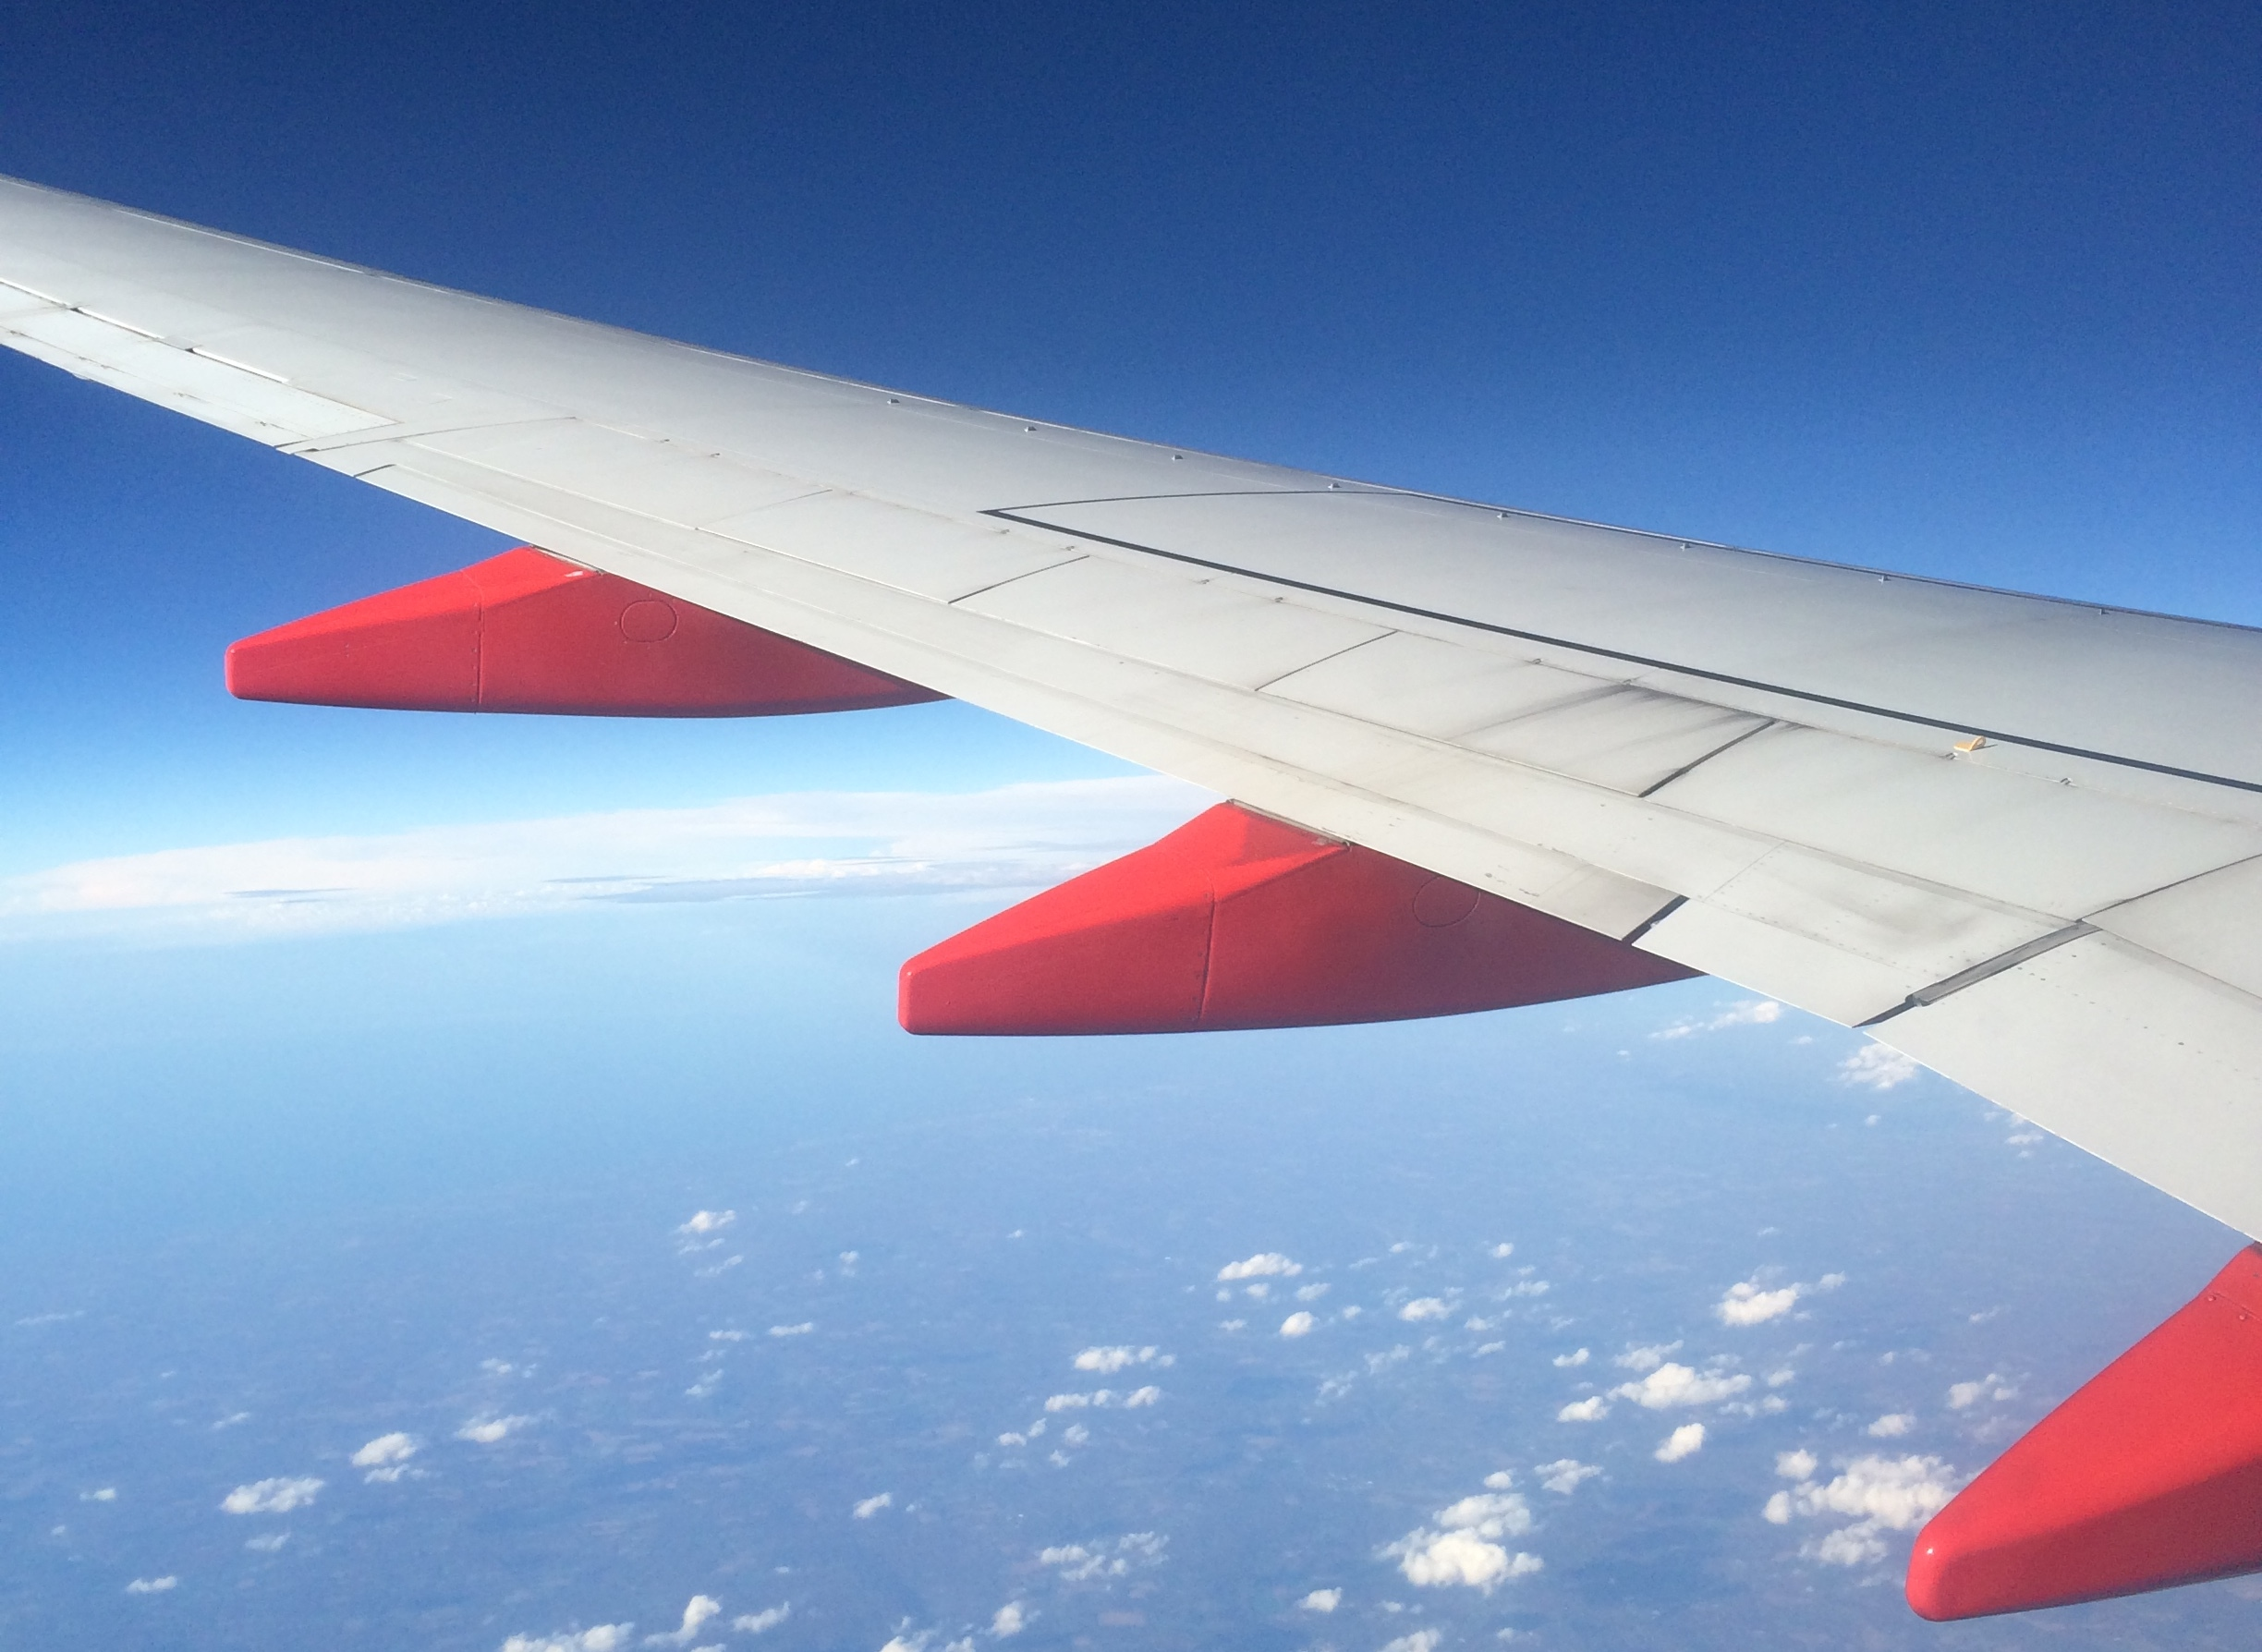 Jet wing - a long flight can lead to jet lag